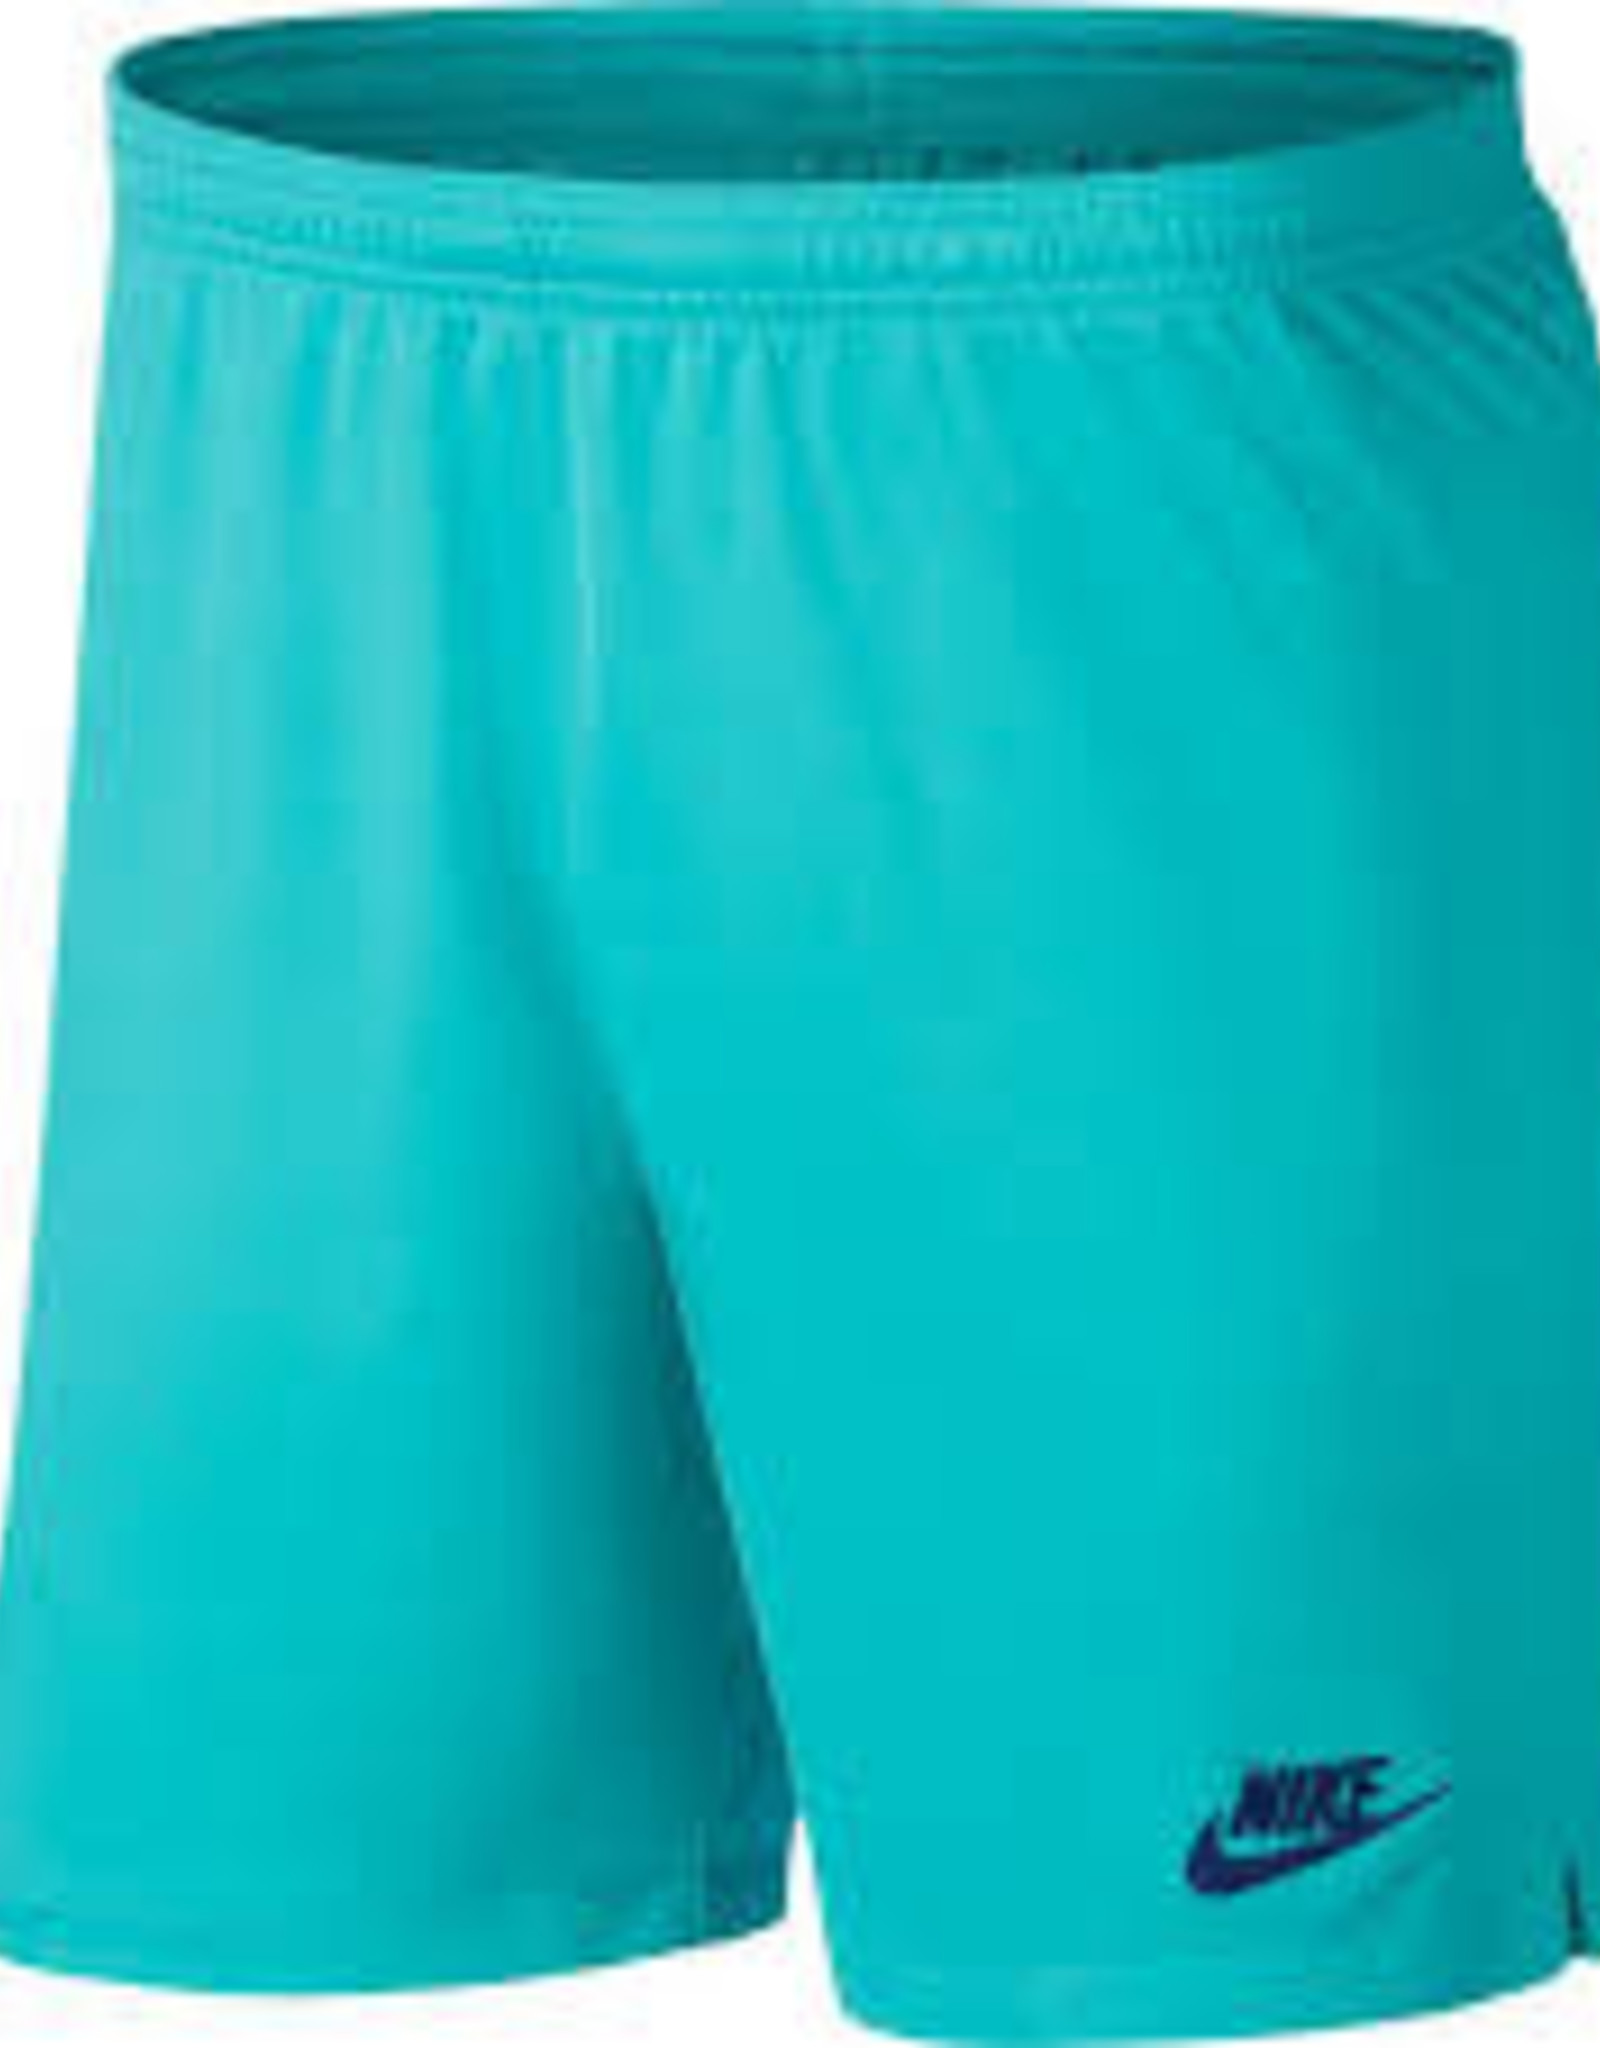 Nike Short FCB third cd7715